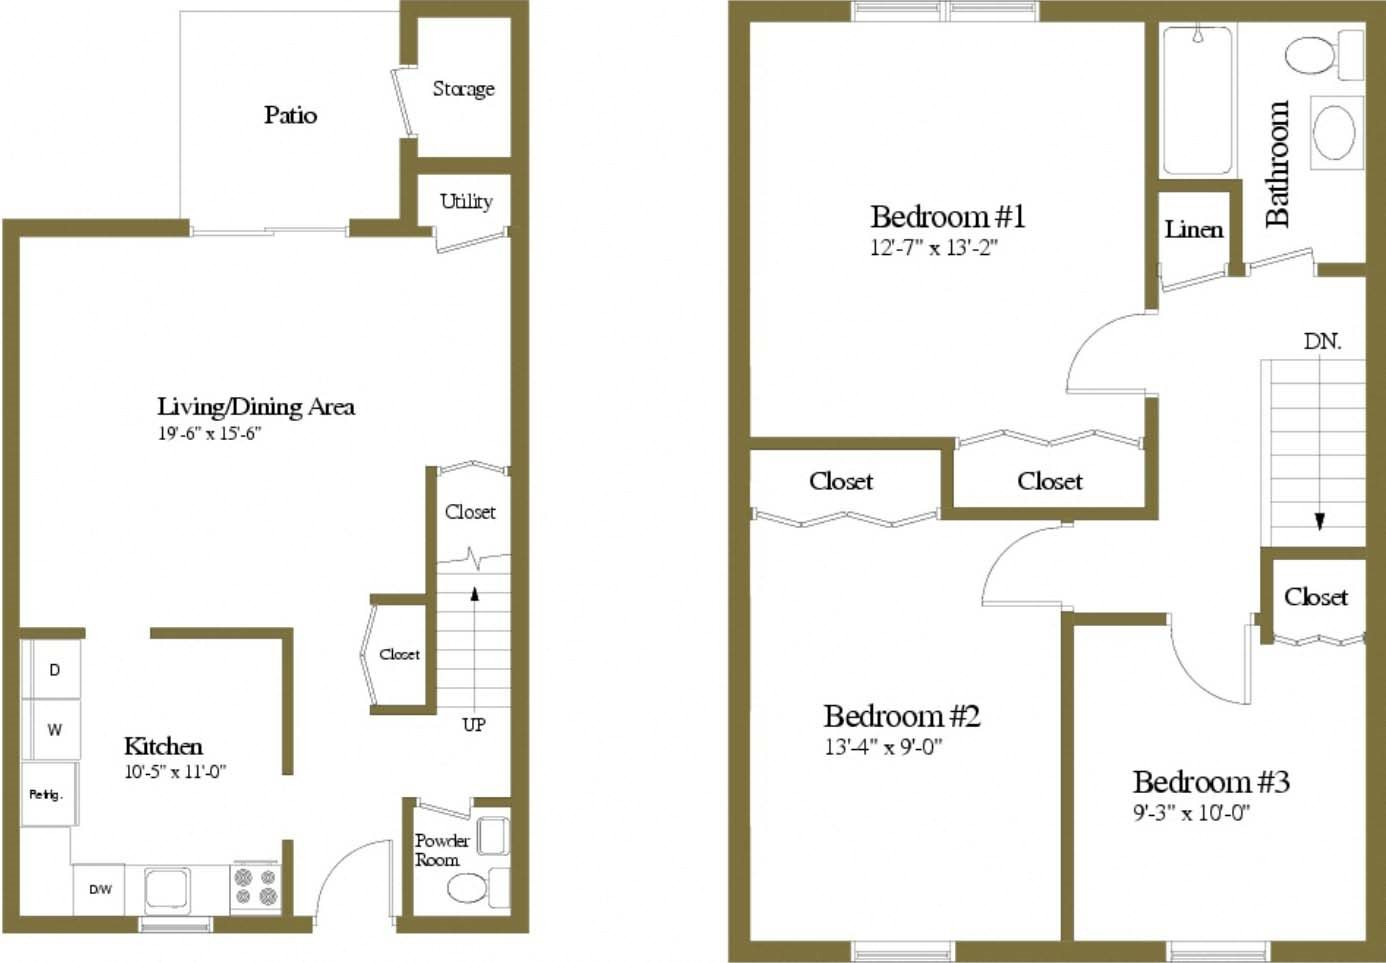 3 Bedrooms 1.5 Bath Floor Plan 3